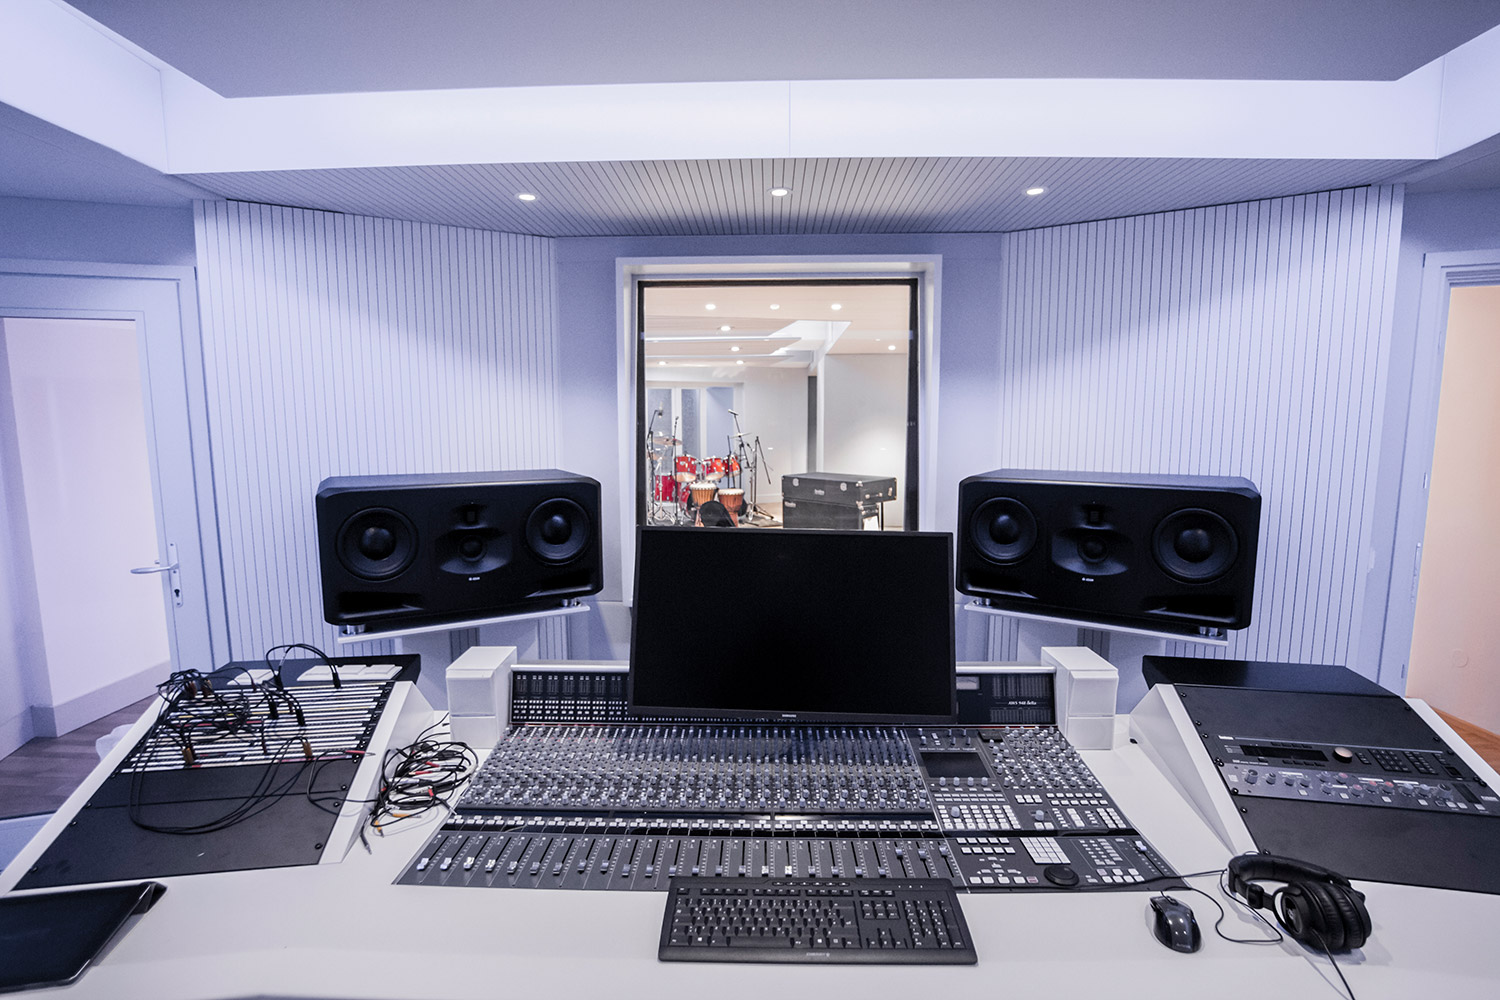 Vienna City Sound is a twelve-room recording studio built in the basement of a vintage commercial building in the heart of Vienna. Owner Peter Zimmerl's retained the services of WSDG to design his dream studio. Control room sweet spot view.